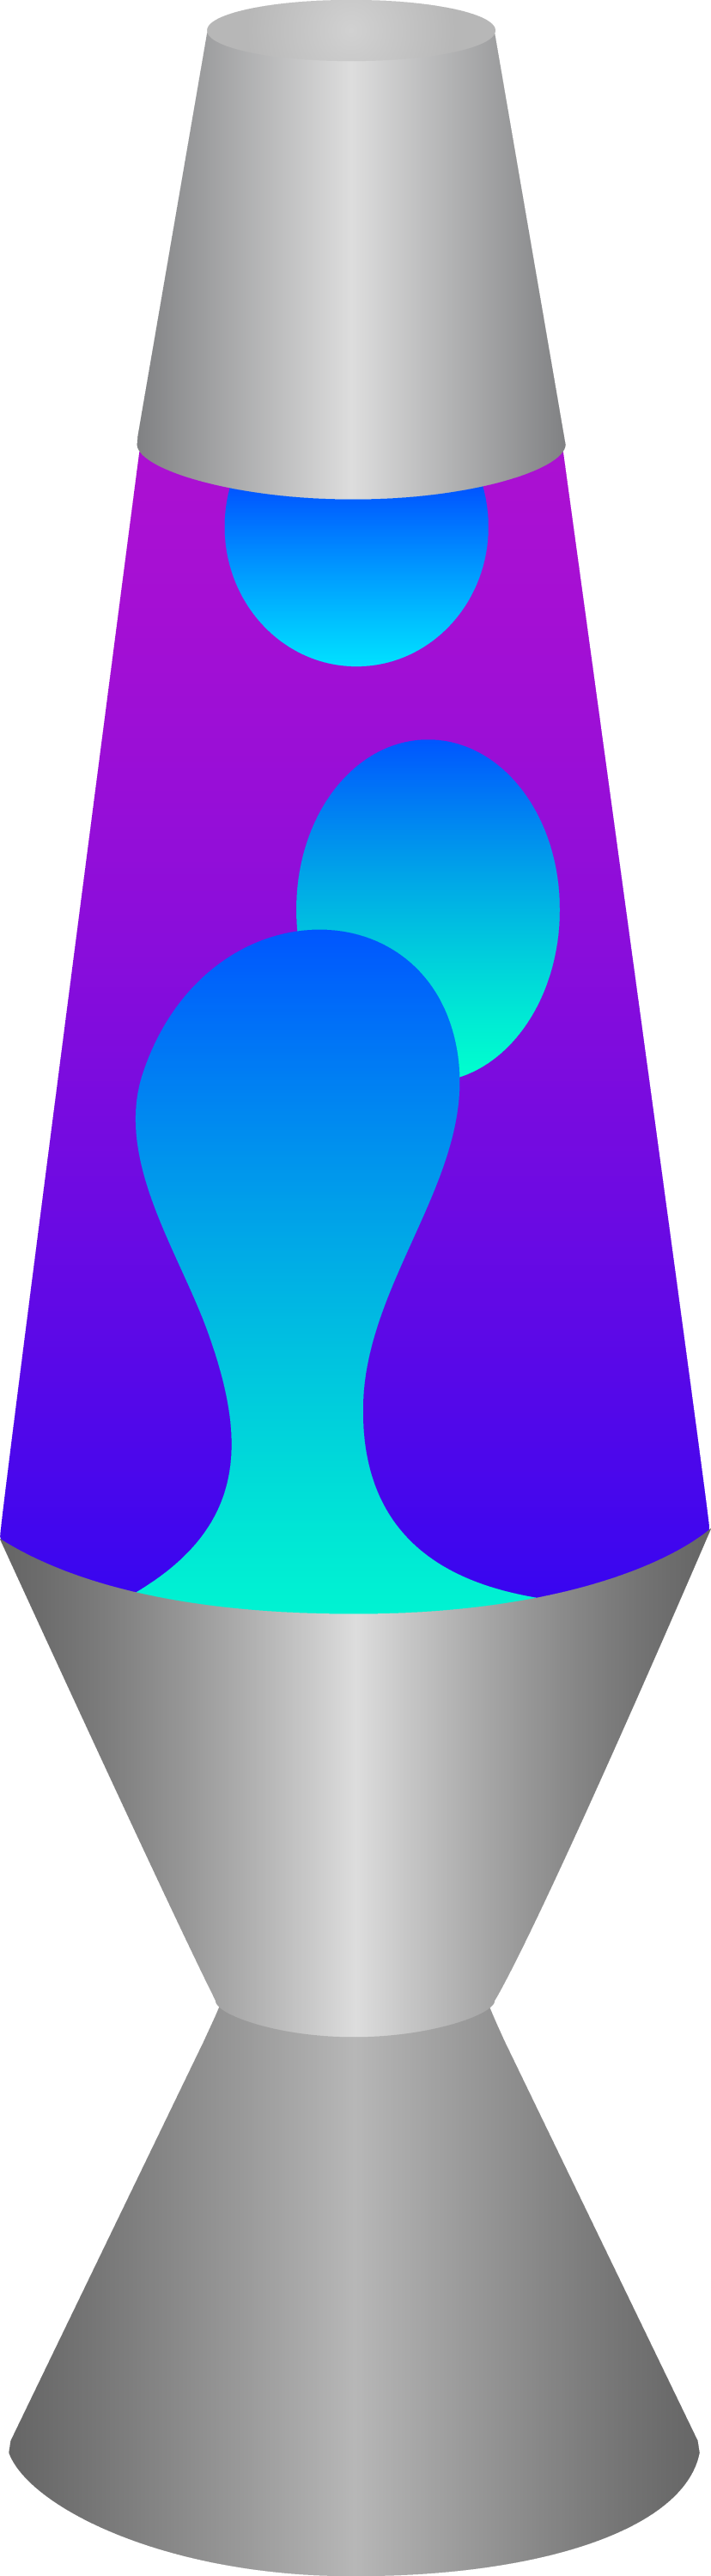 lava lamp drawing. blue and purple lava lamp drawing